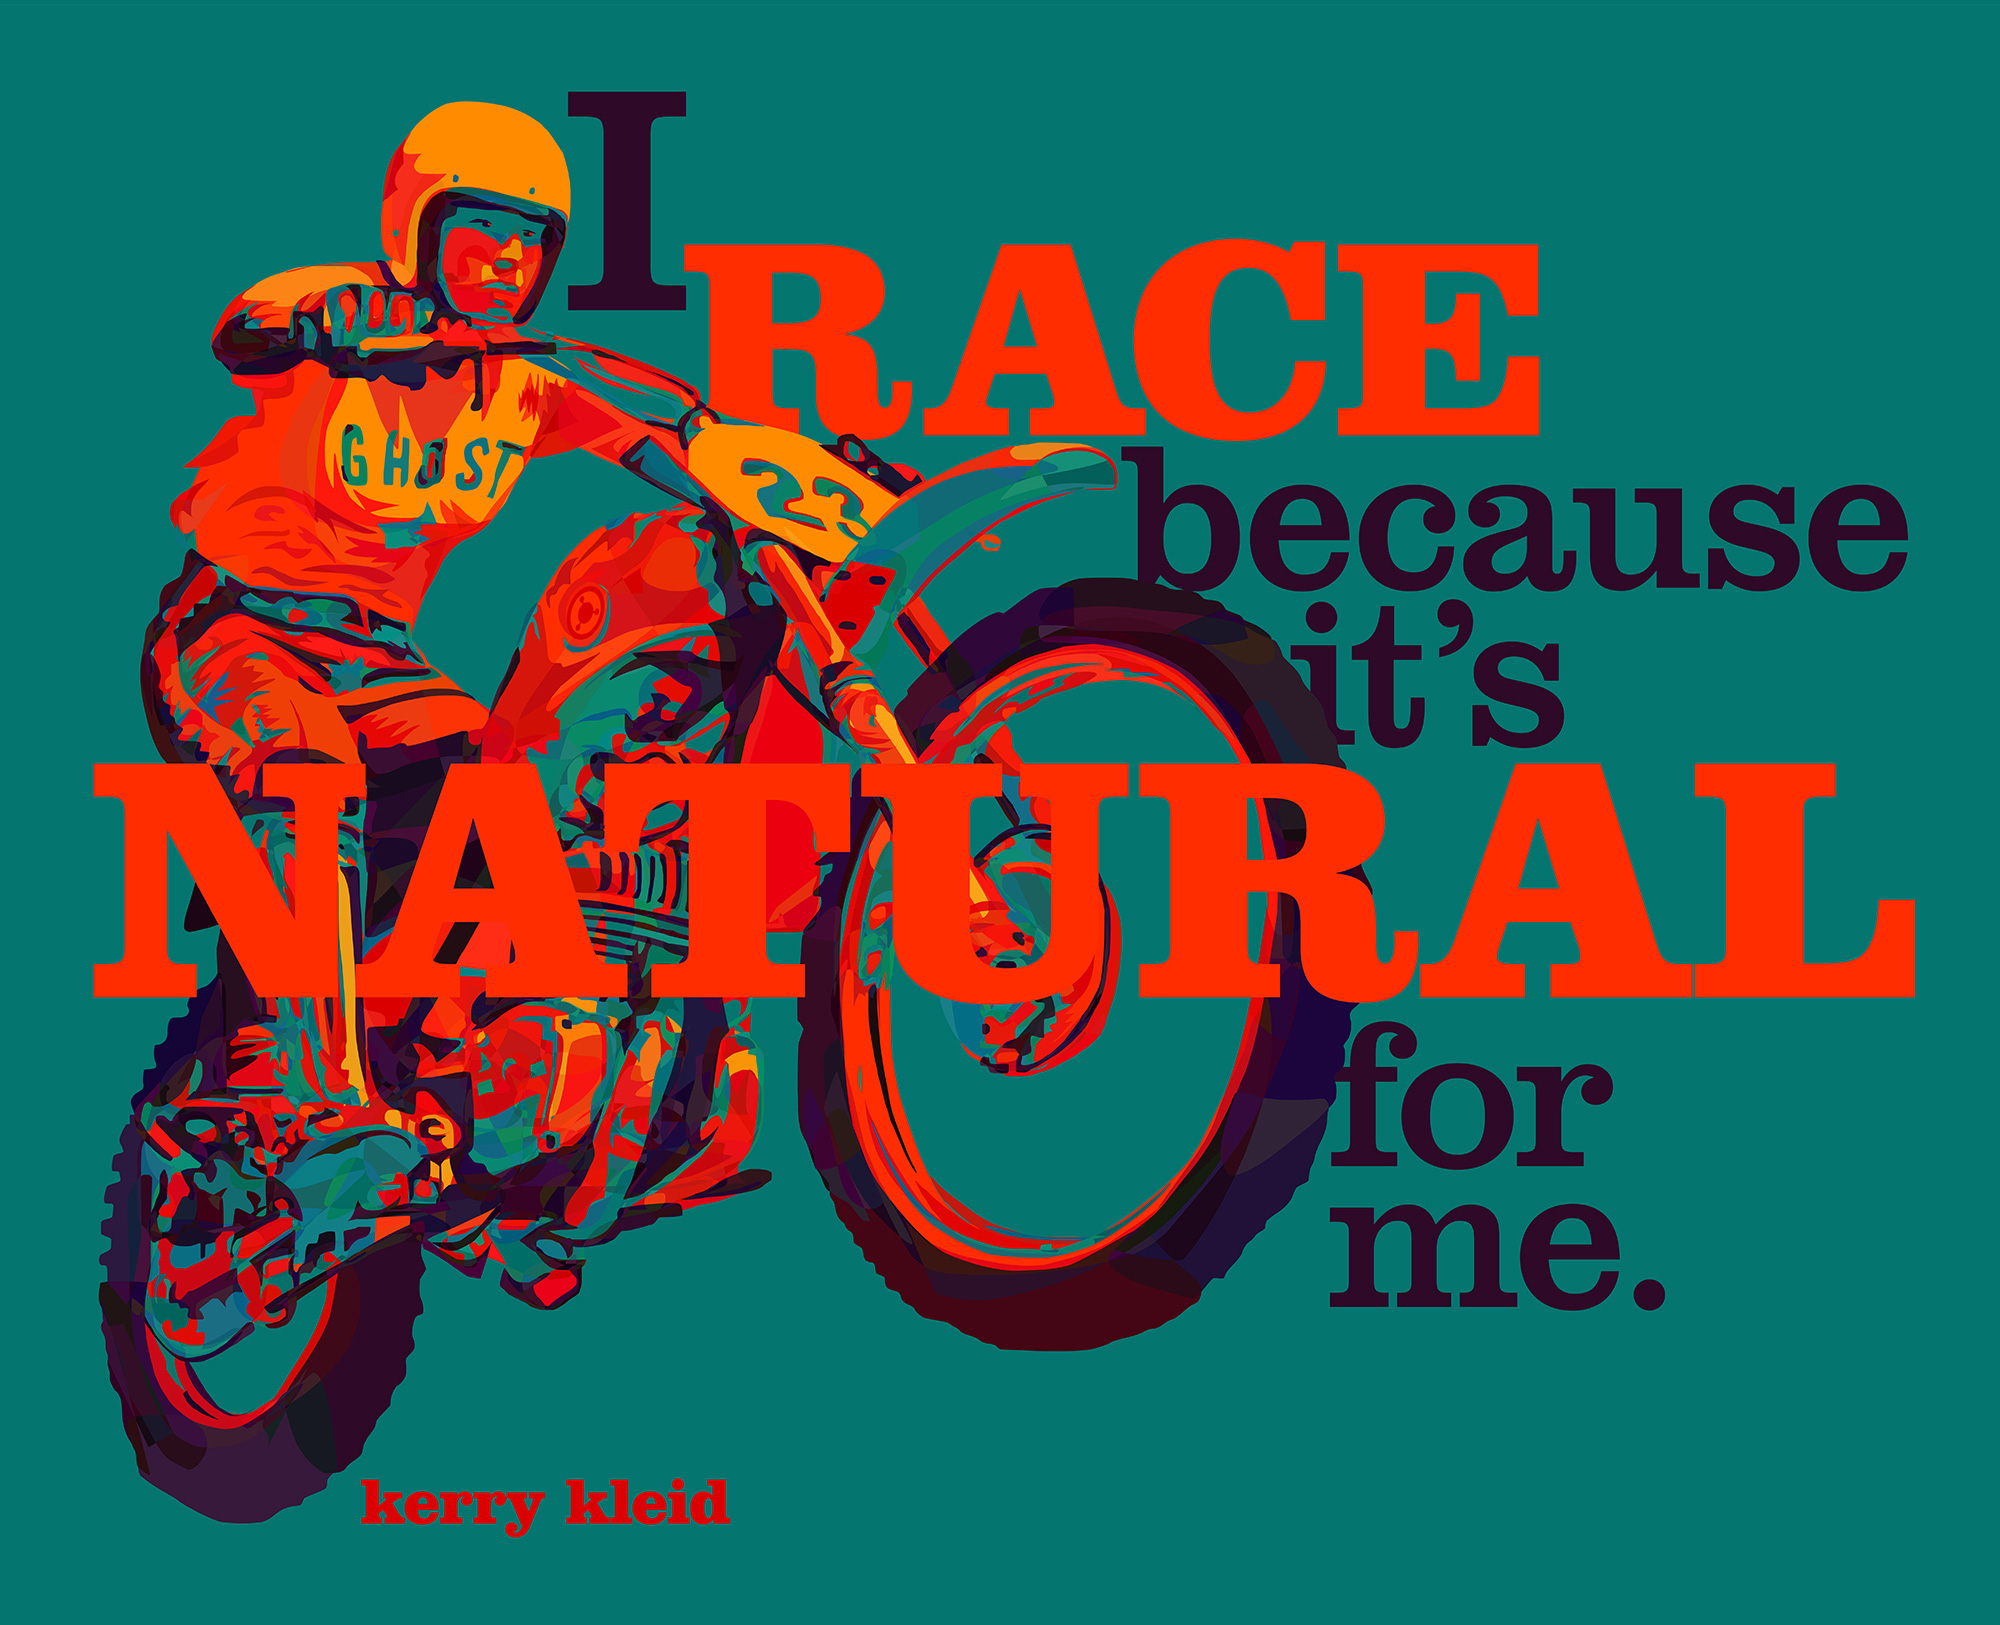 """I race because it's natural for me."" Kerry Kleid [1025×835] [OC]"